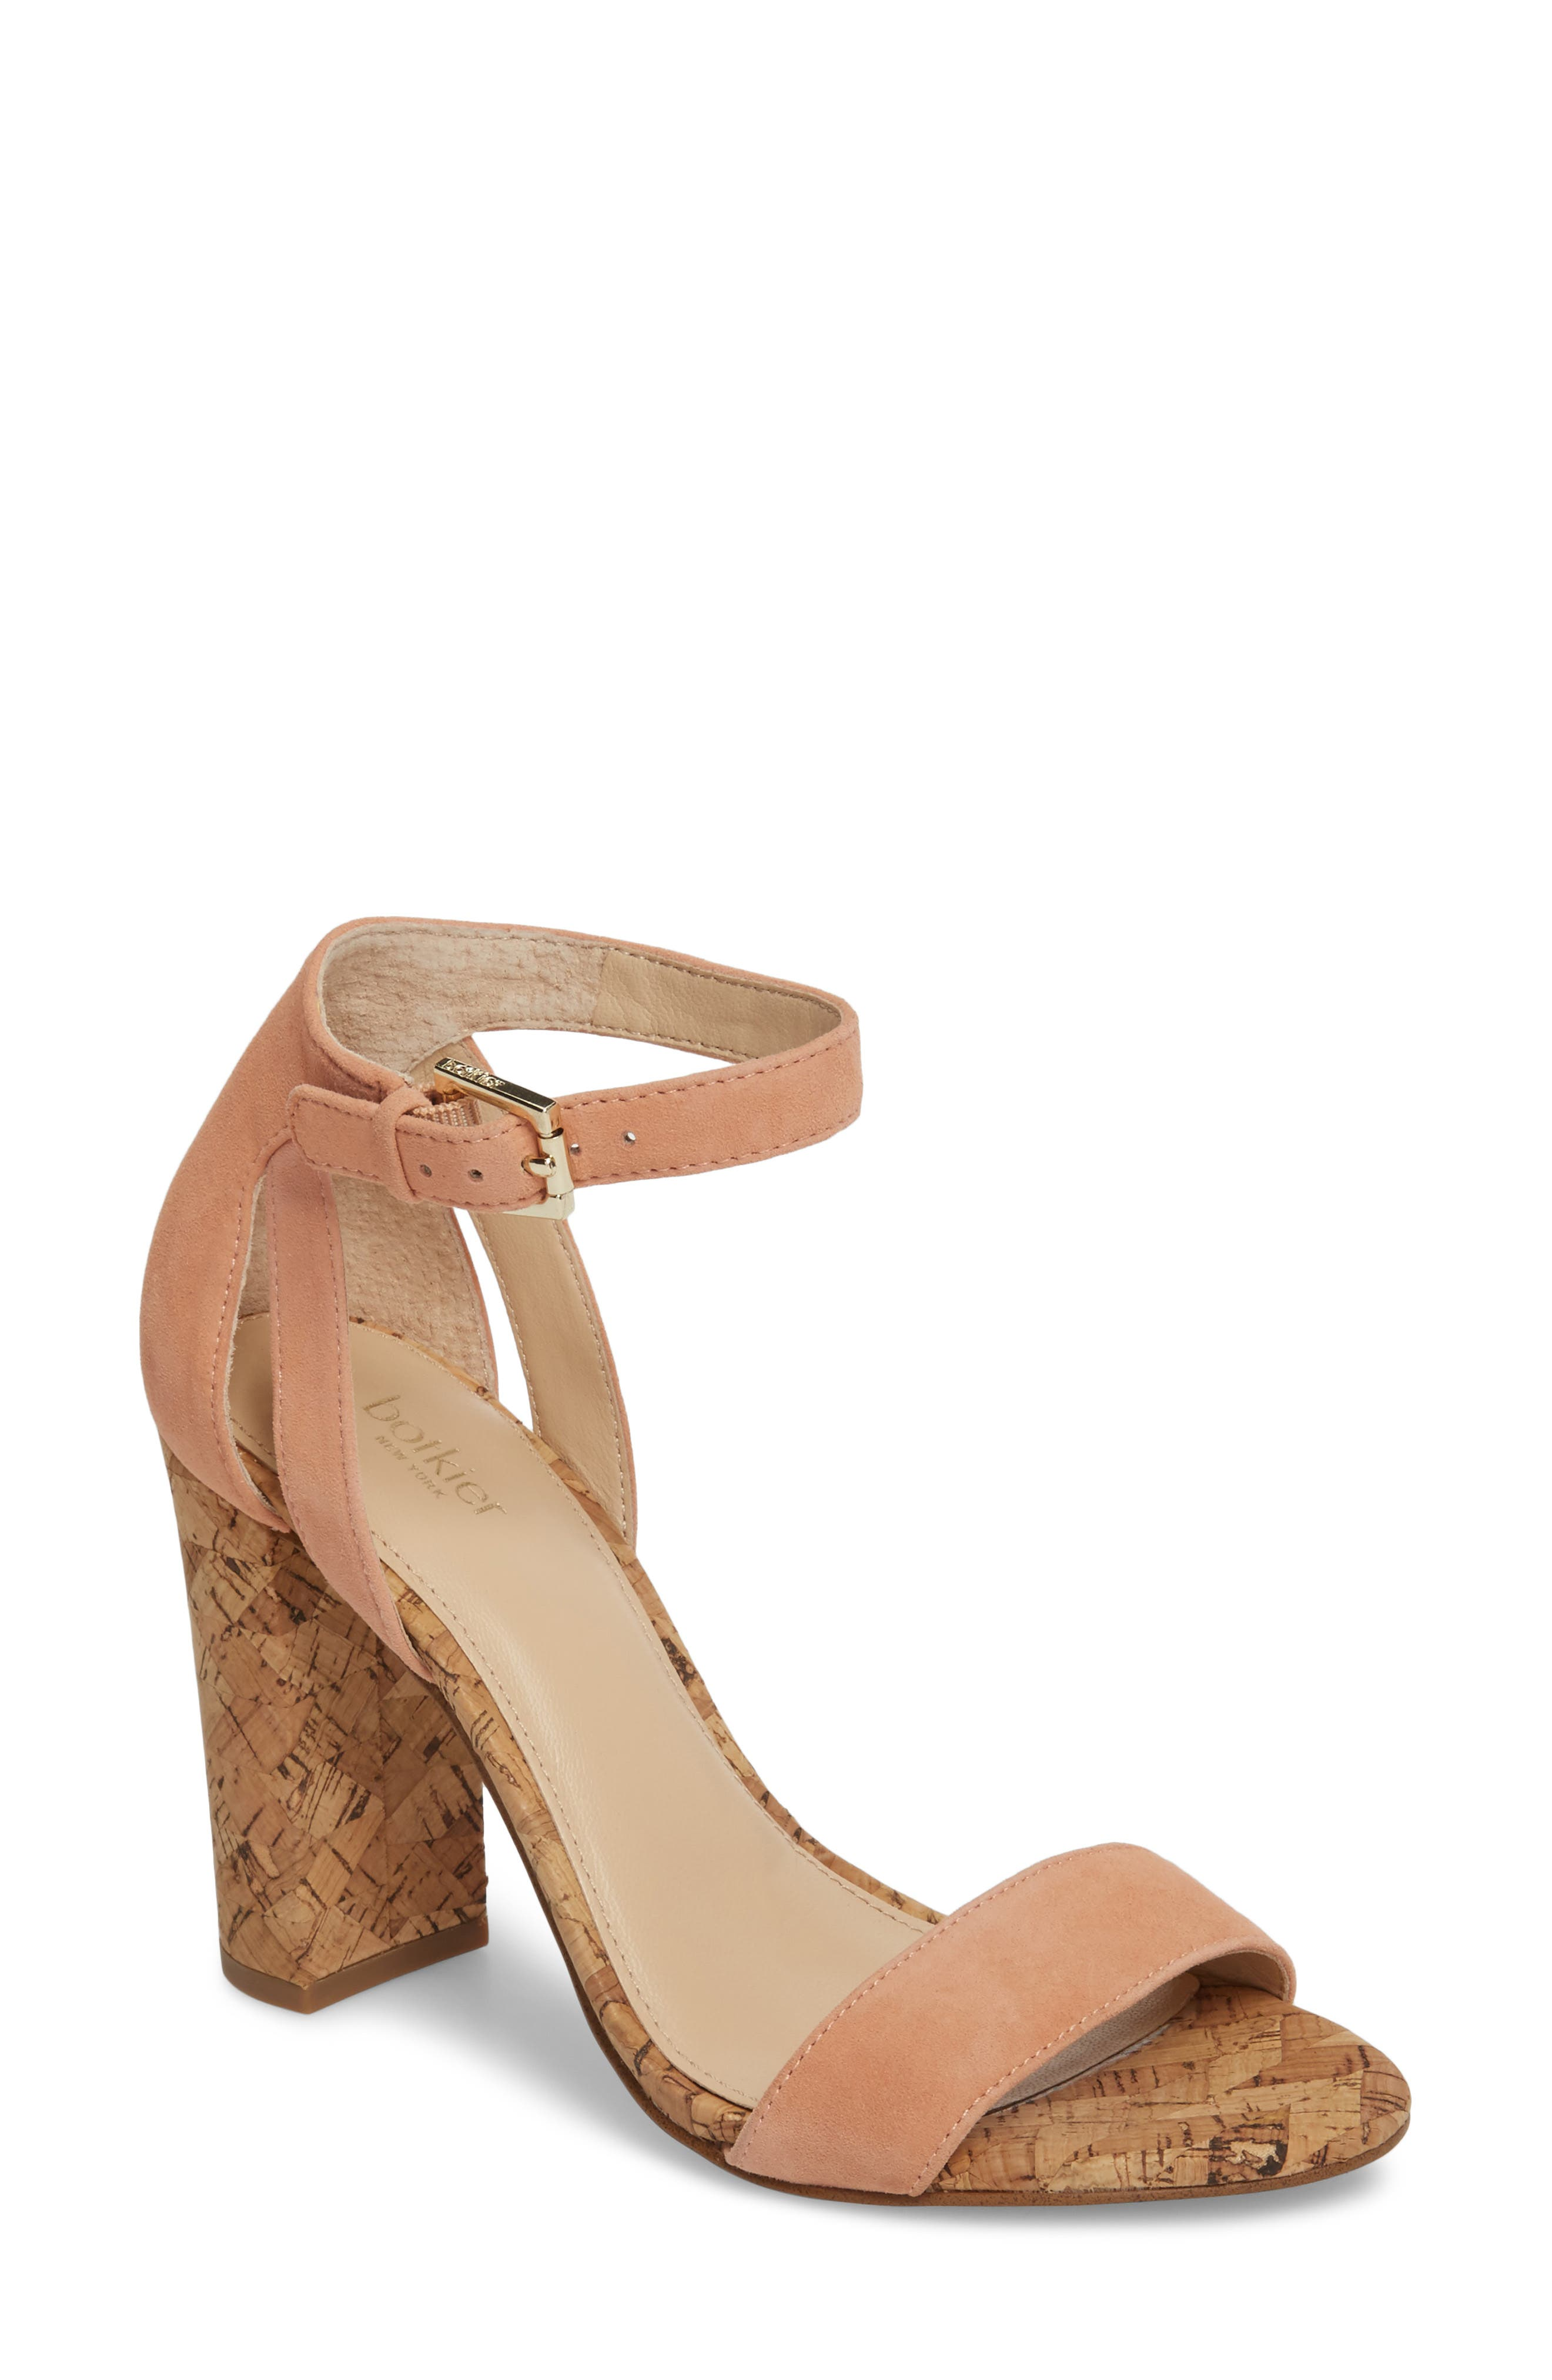 Gianna Ankle Strap Sandal,                         Main,                         color, Soft Peach Suede